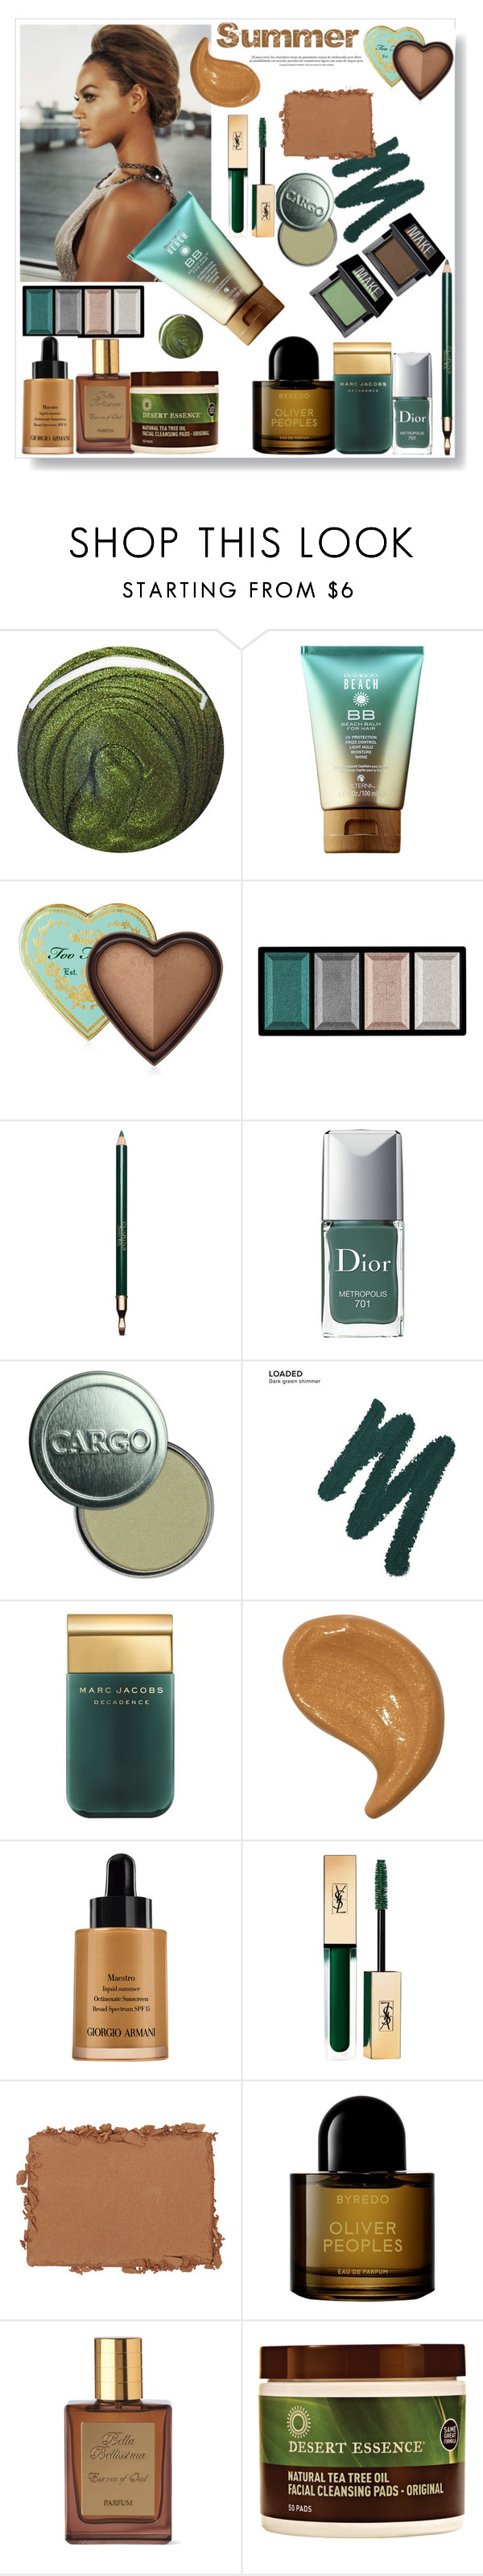 """""""Summer .."""" by gul07 ❤ liked on Polyvore featuring beauty, Jin Soon, Too Faced Cosmetics, Clé de Peau Beauté, Clarins, Christian Dior, CARGO, Urban Decay, Marc Jacobs and Giorgio Armani"""